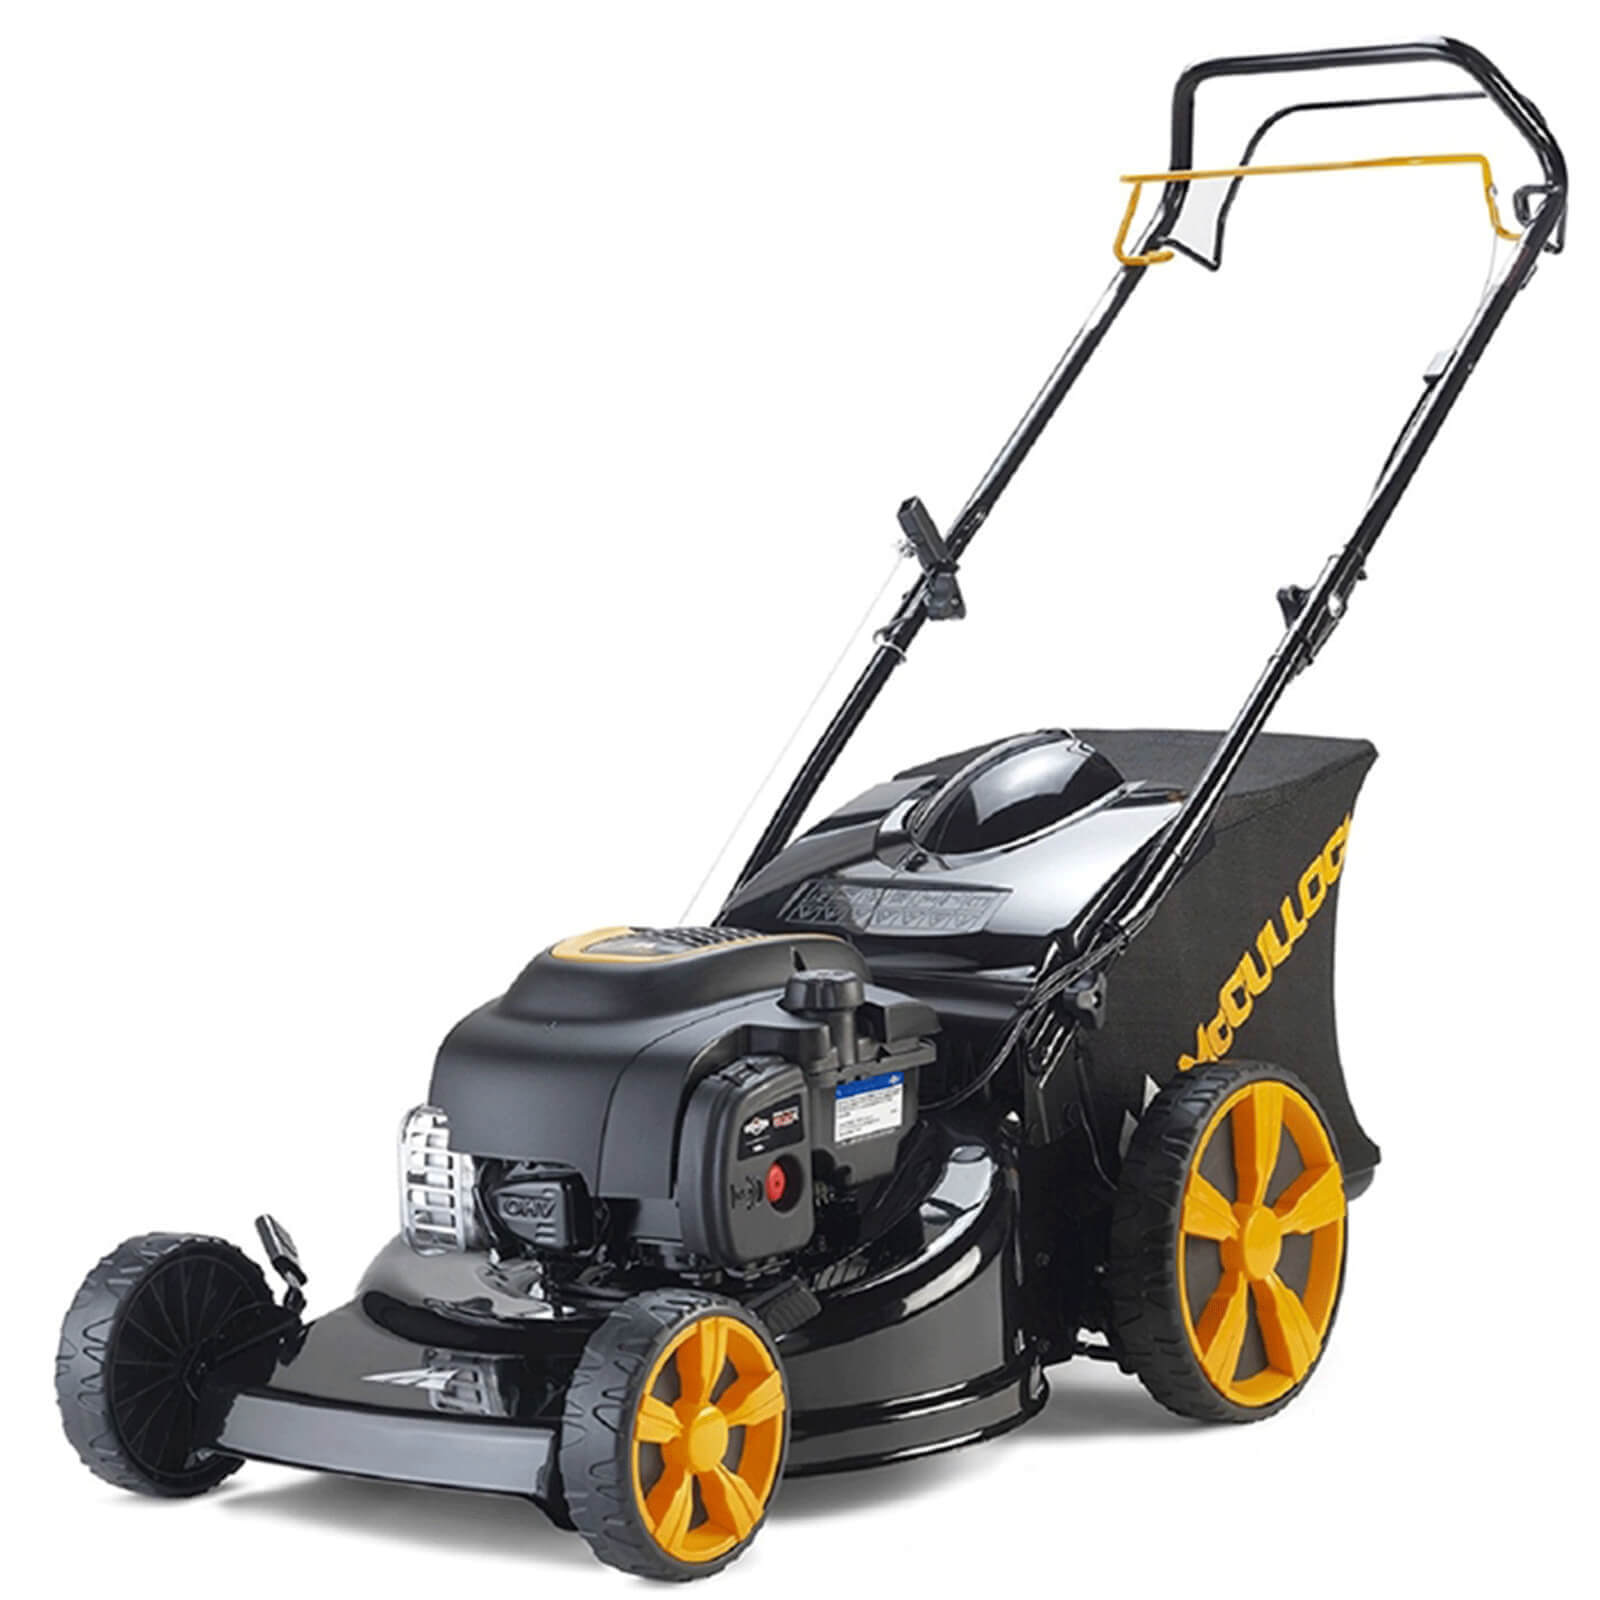 Image of McCulloch M46-125R CLASSIC PLUS Self Propelled Petrol Rotary Lawnmower 460mm